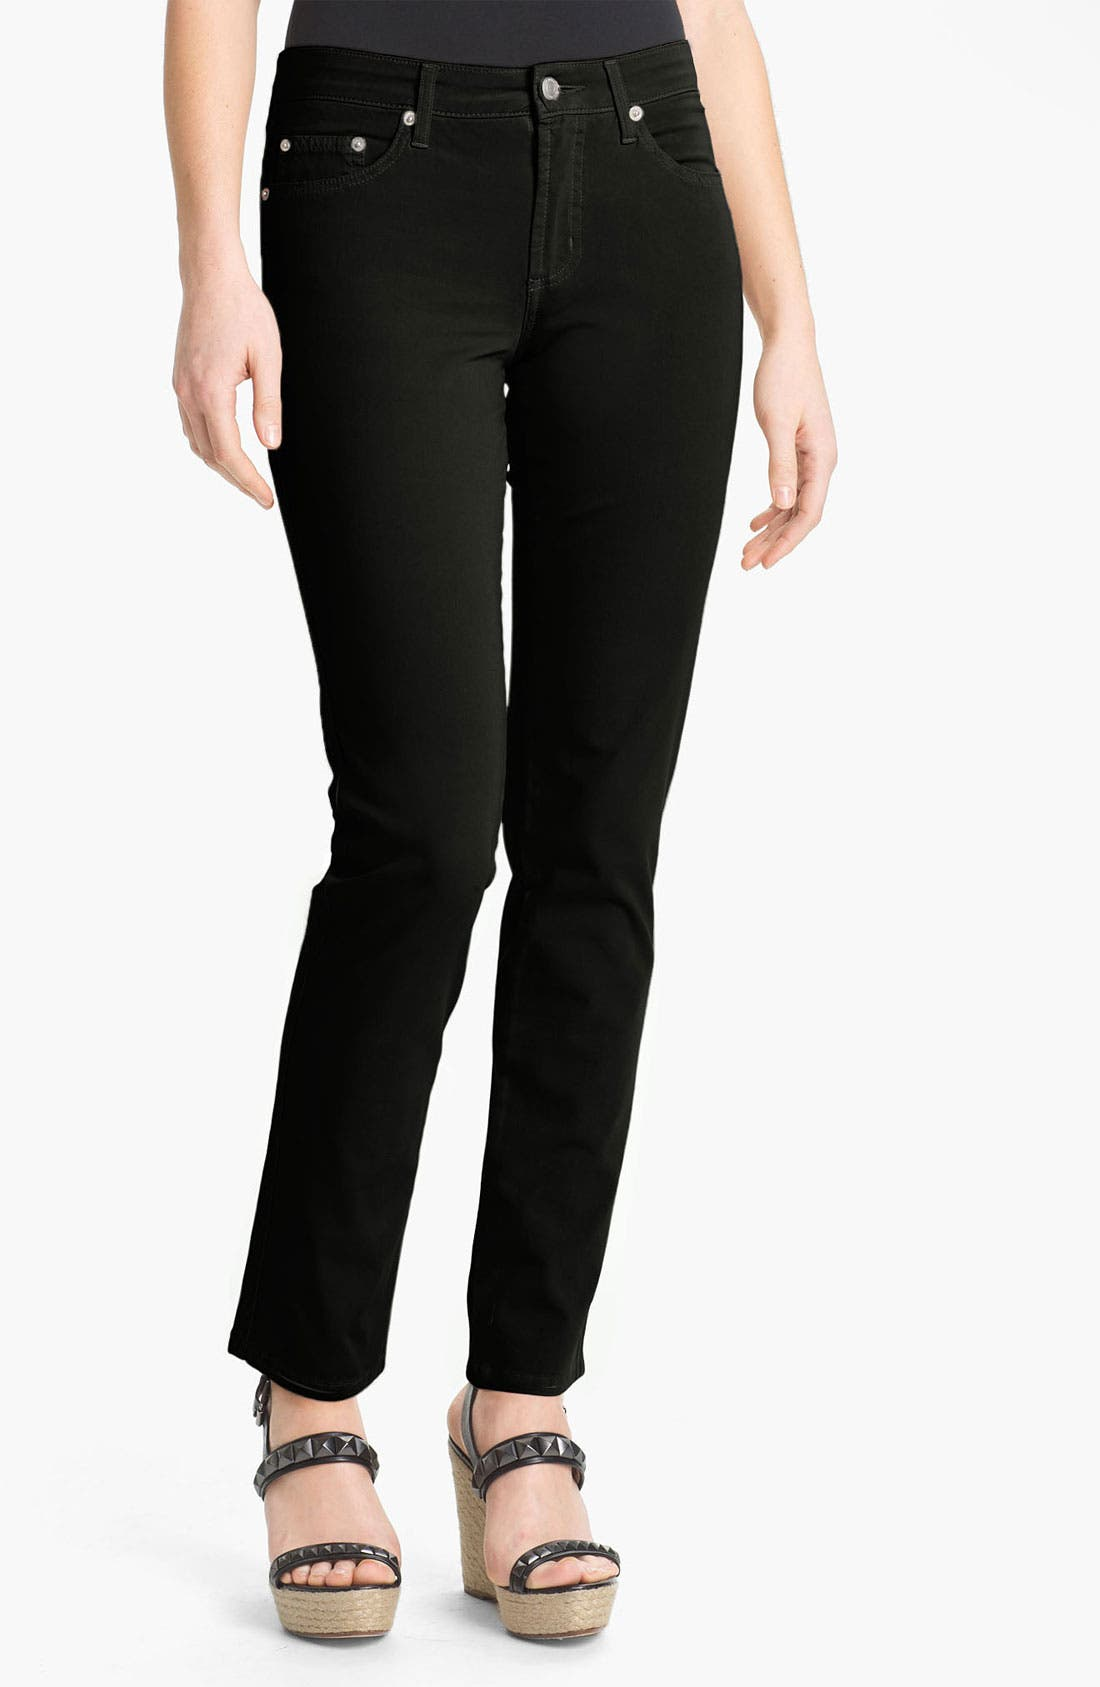 Alternate Image 1 Selected - Fabrizio Gianni 5-Pocket Slim Stretch Jeans (Online Only)